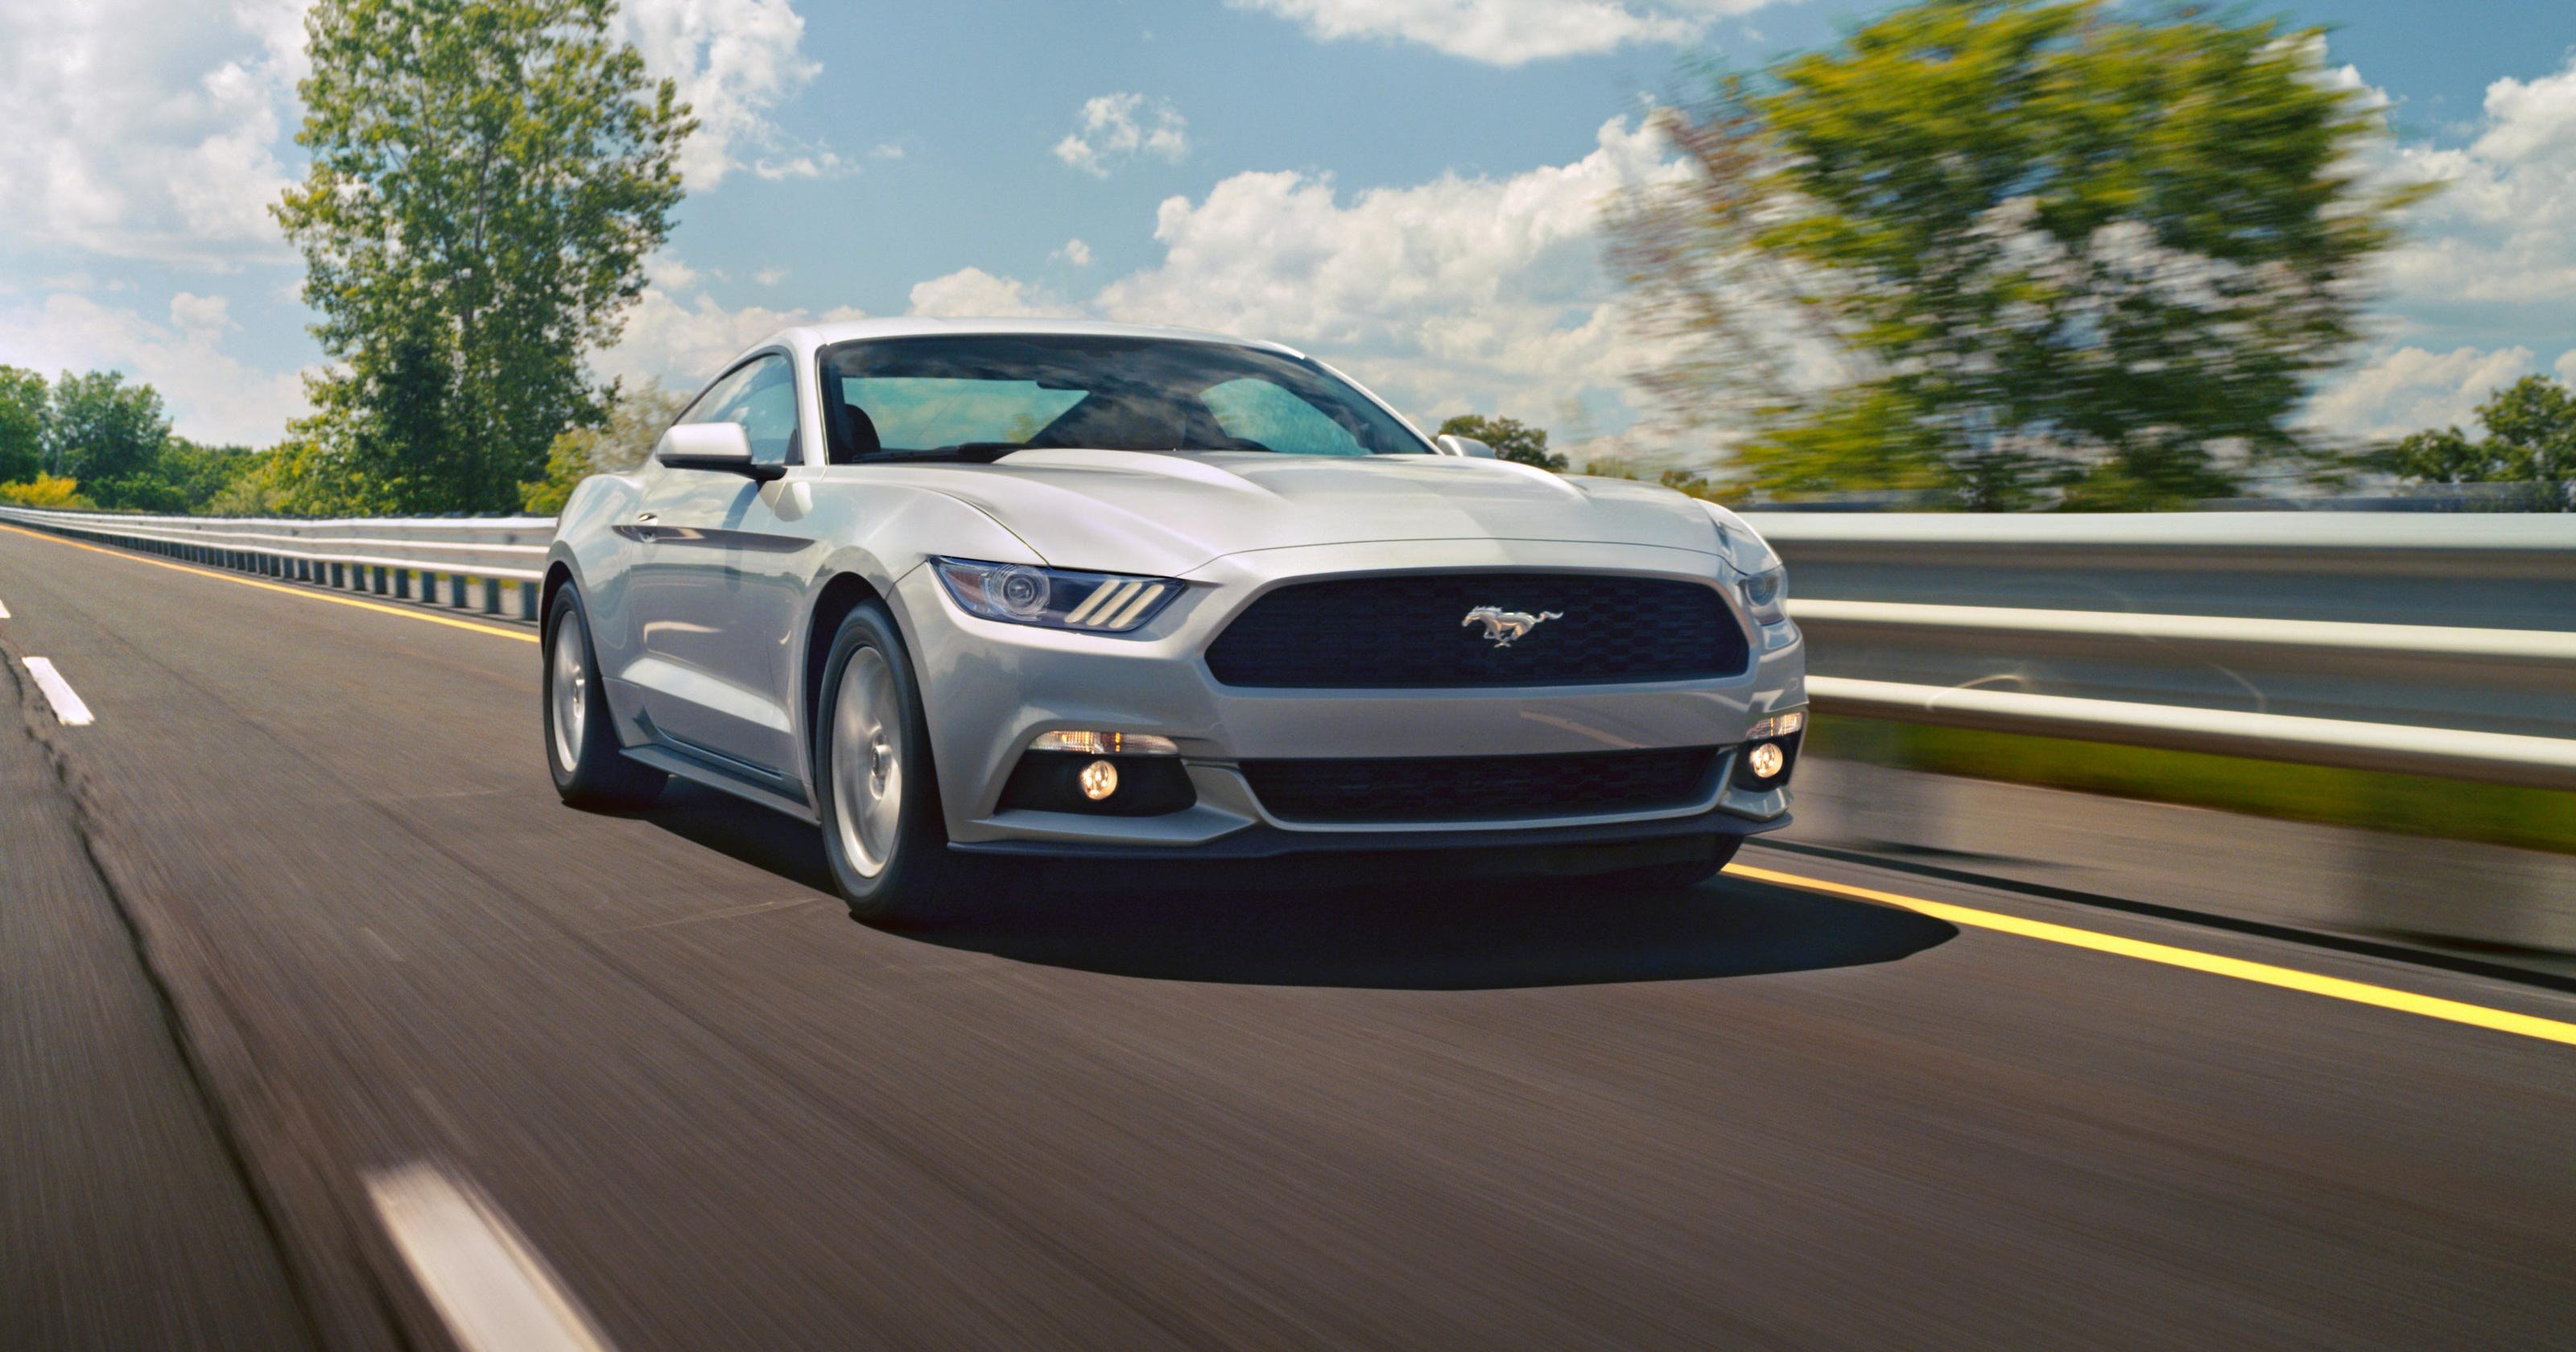 Fords mustang pulls ahead in sales race